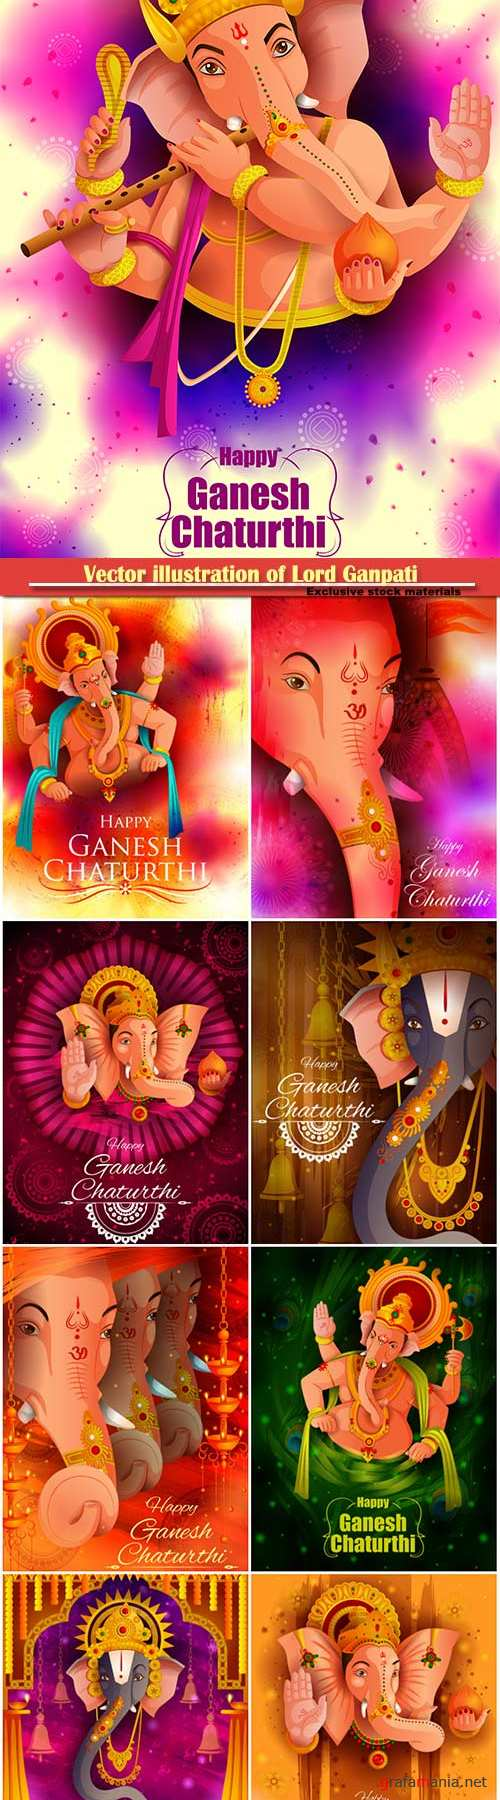 Vector illustration of Lord Ganpati